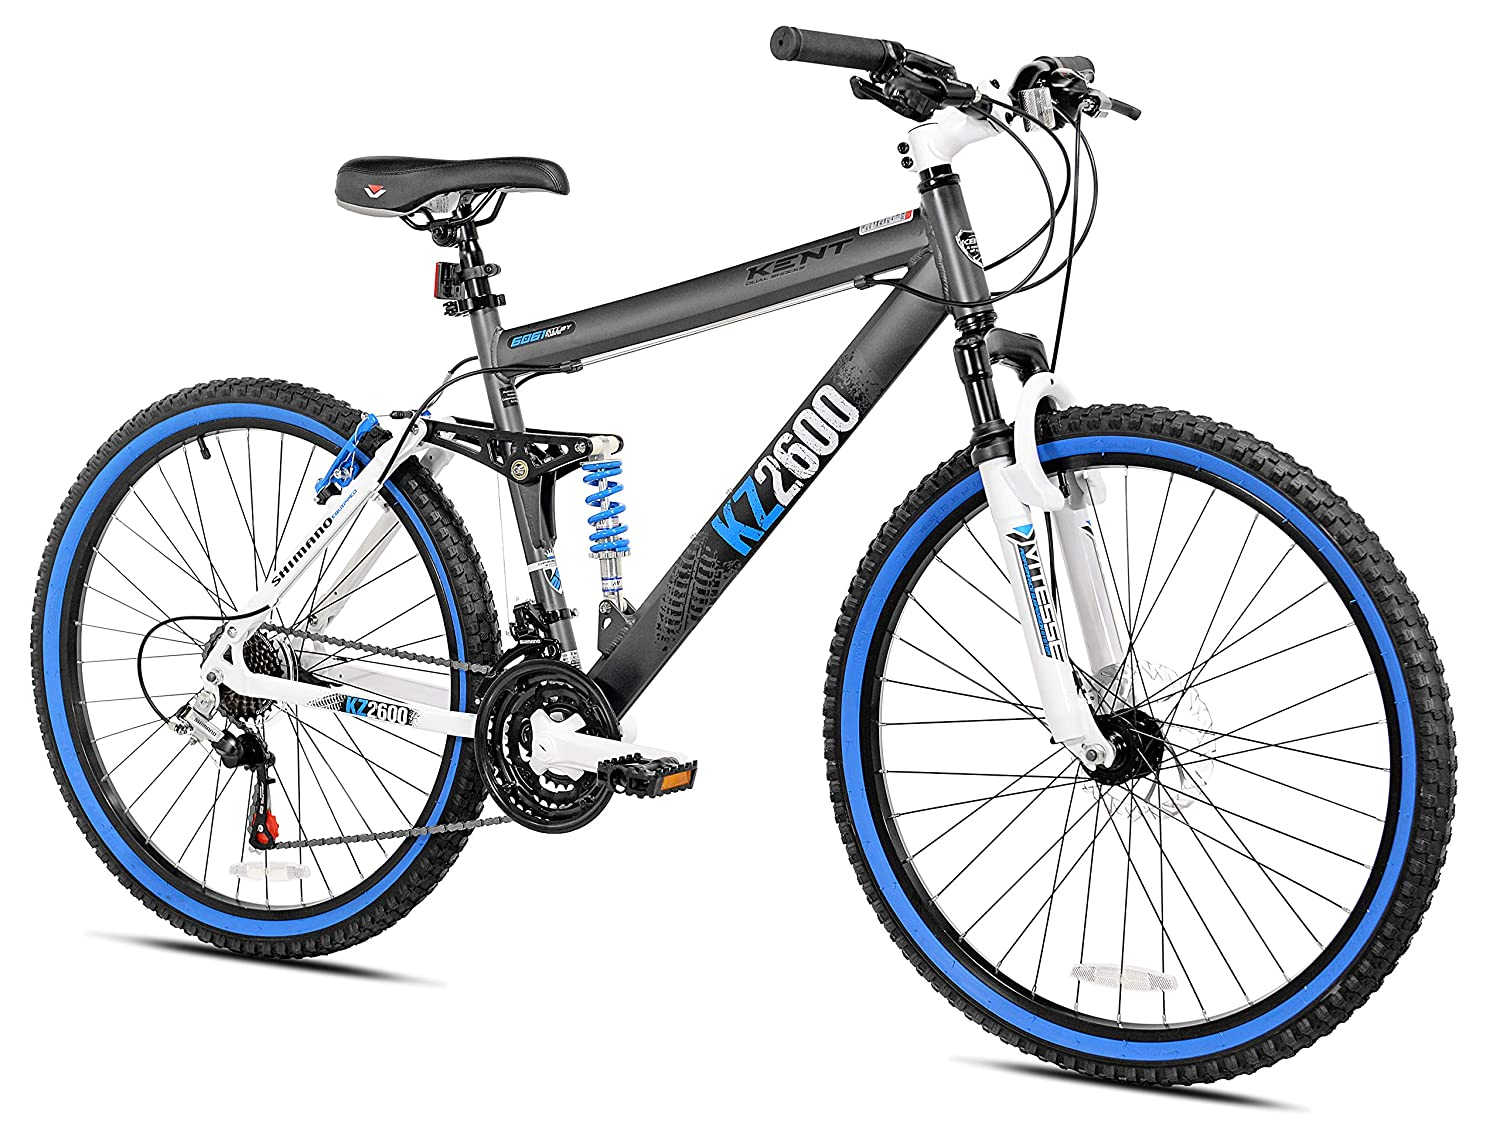 Top 10 Best Mountain Bikes (2020 Reviews & Buying Guide) 6